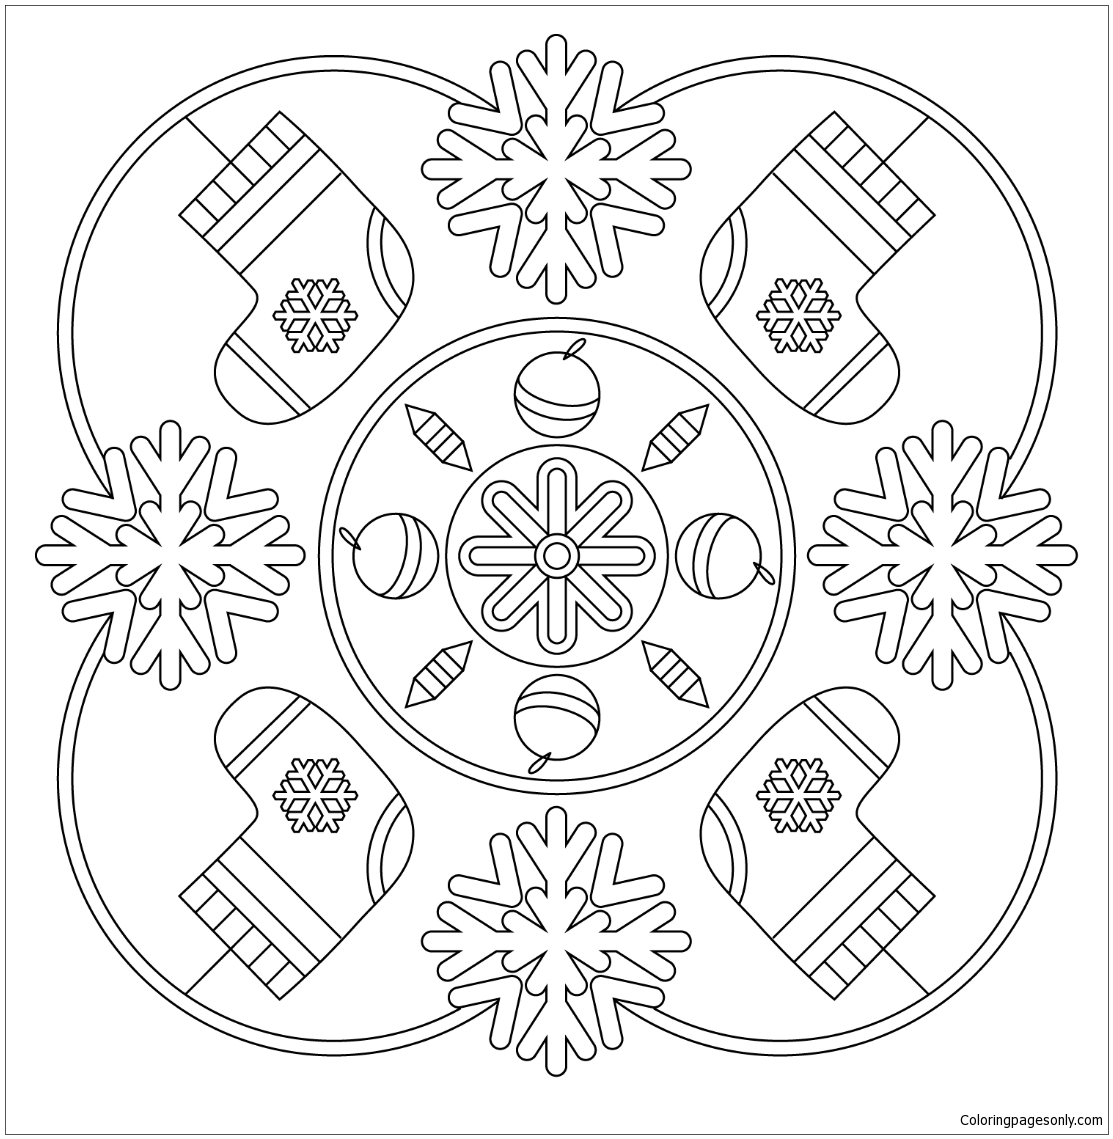 Winter Mandala Coloring Page Free Coloring Pages Online